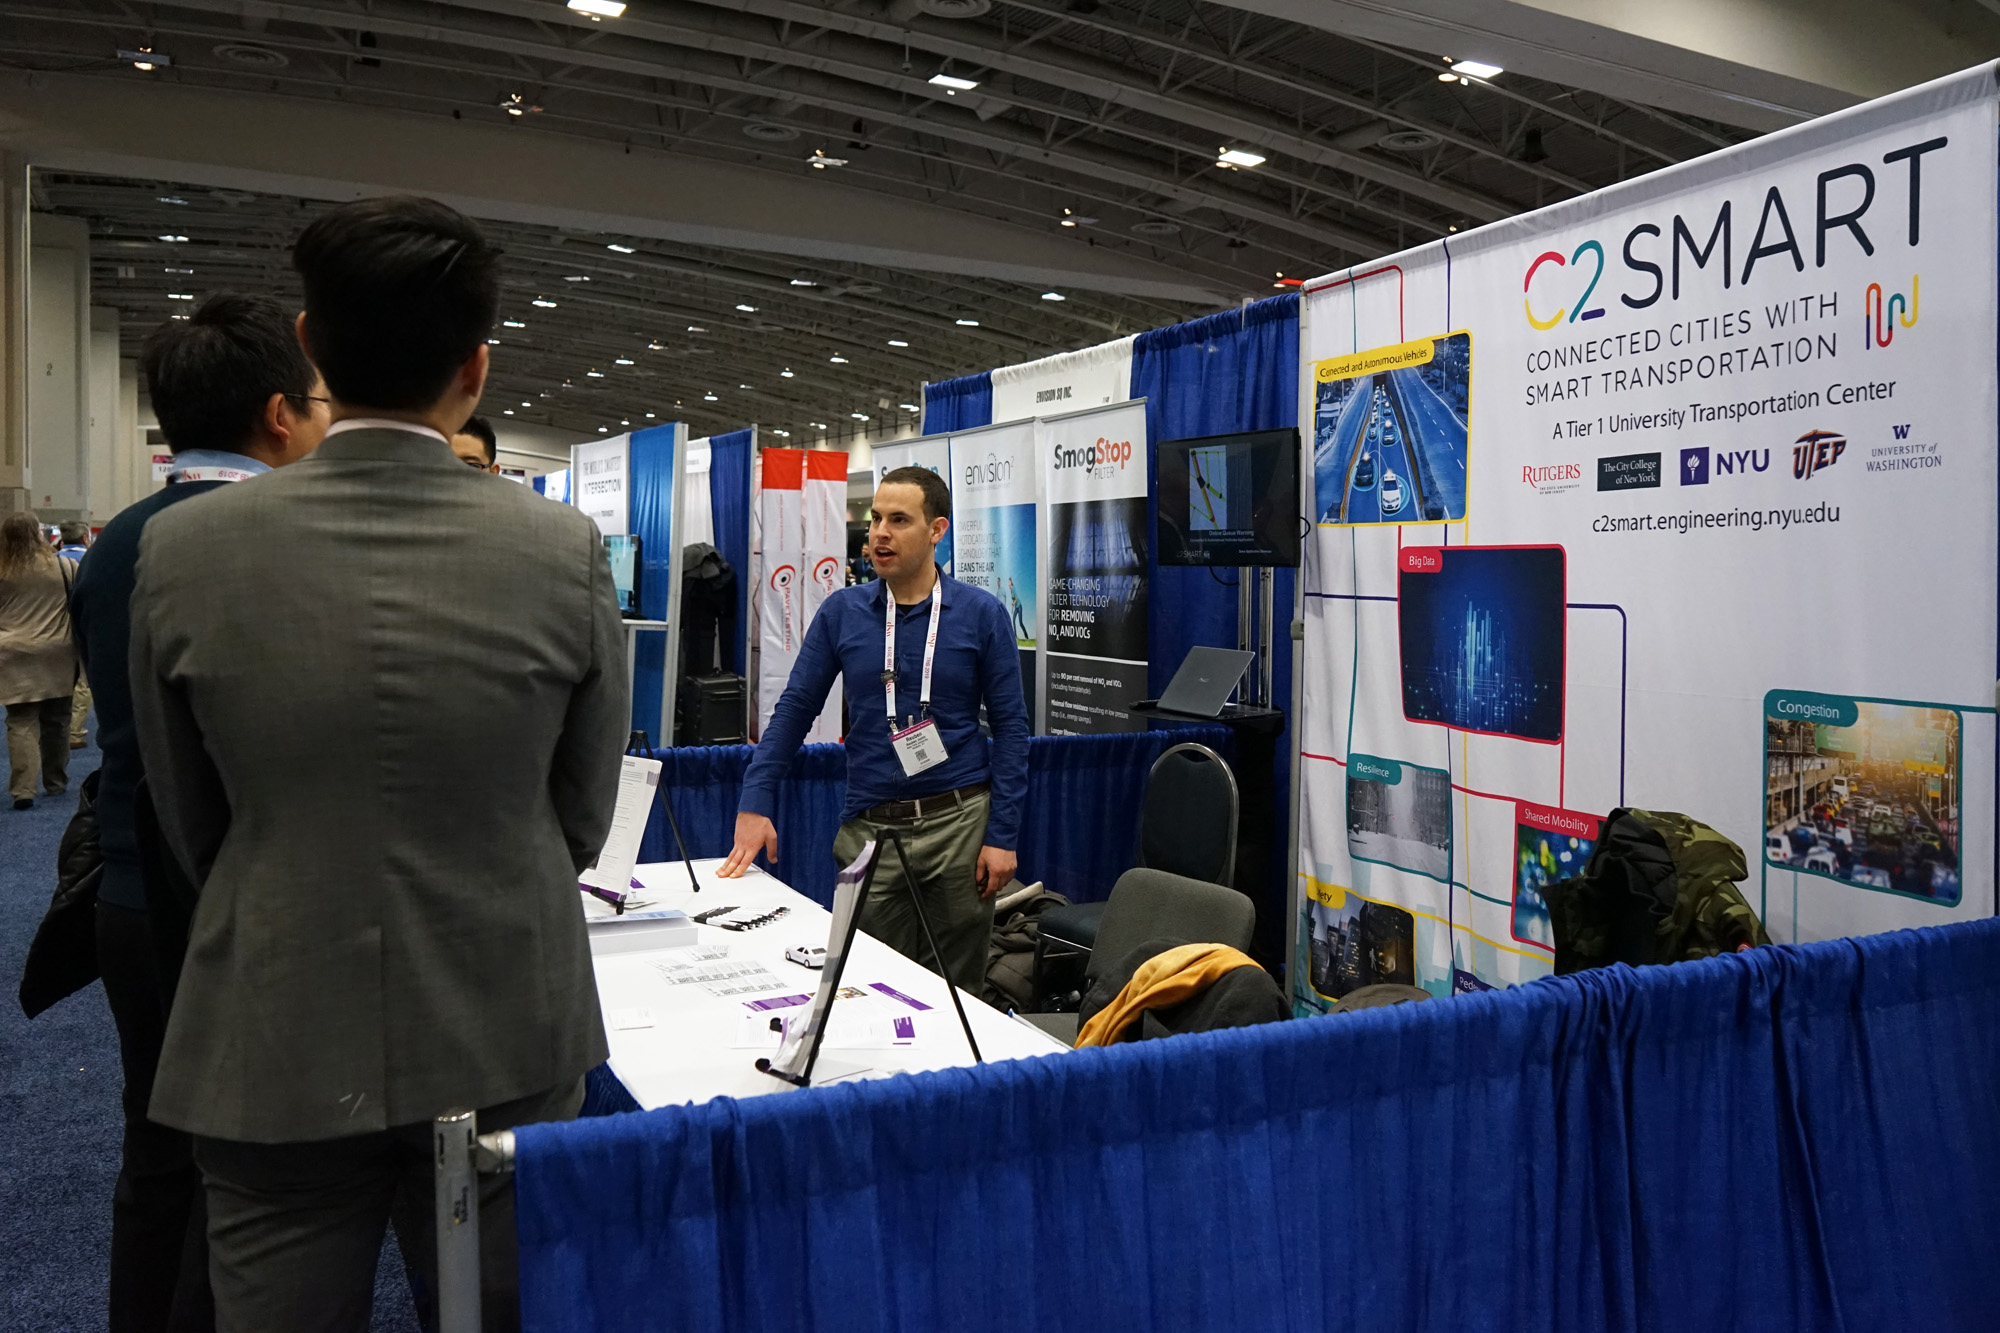 Graduate student Reuben Juster greets visitors at C2SMART's TRB booth.